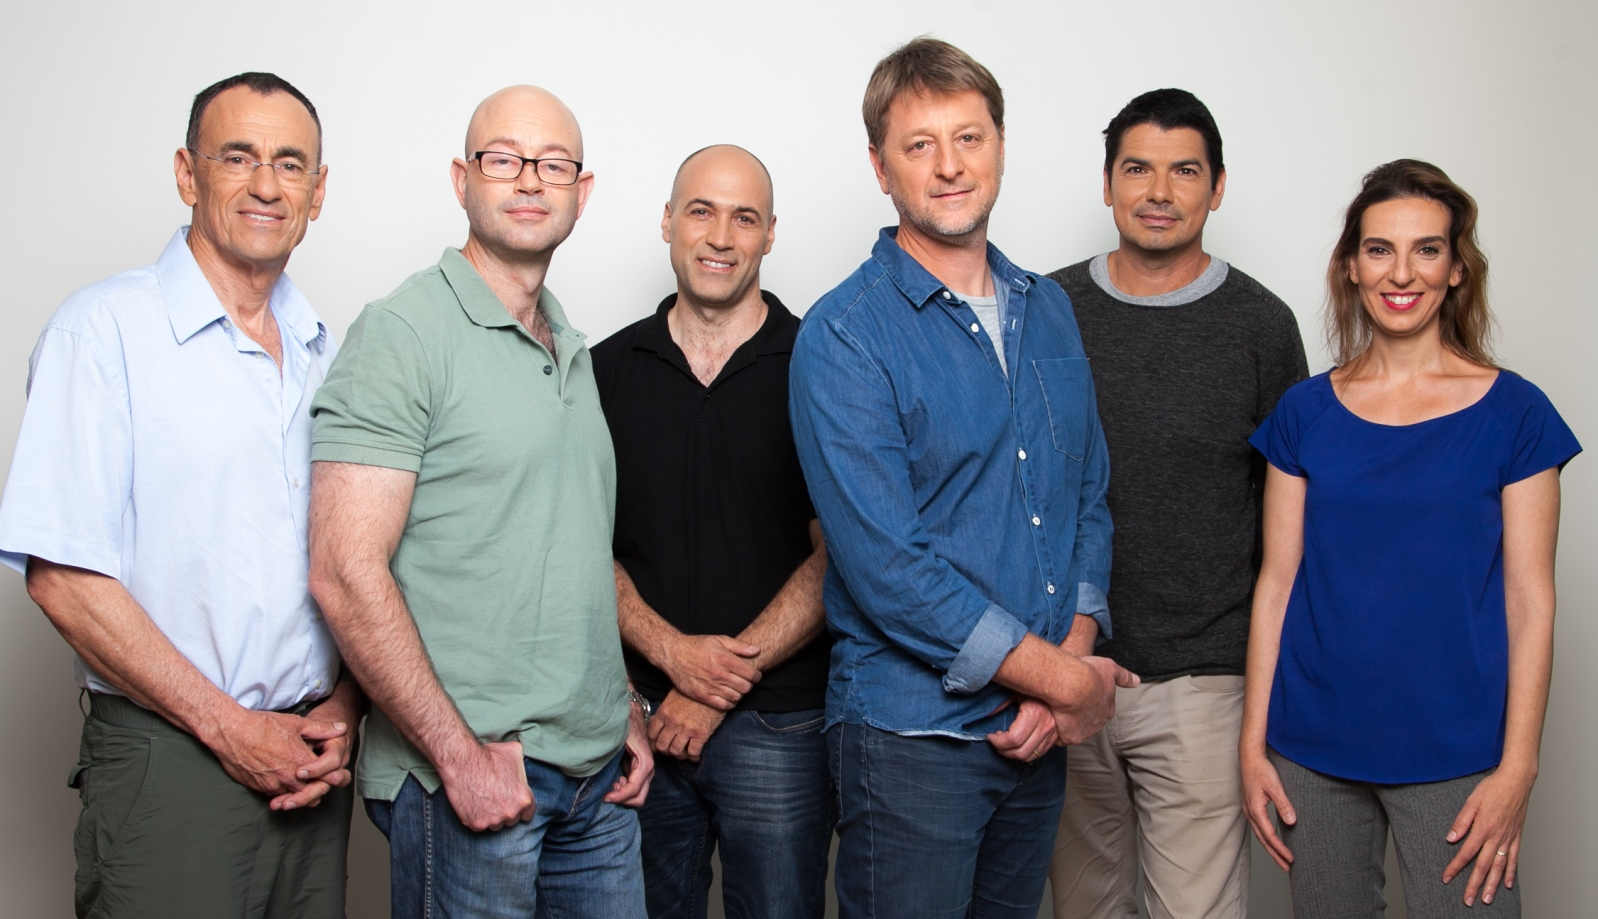 The DeepOptics team, with CEO Yariv Haddad in center. Photo by Noa Zeni